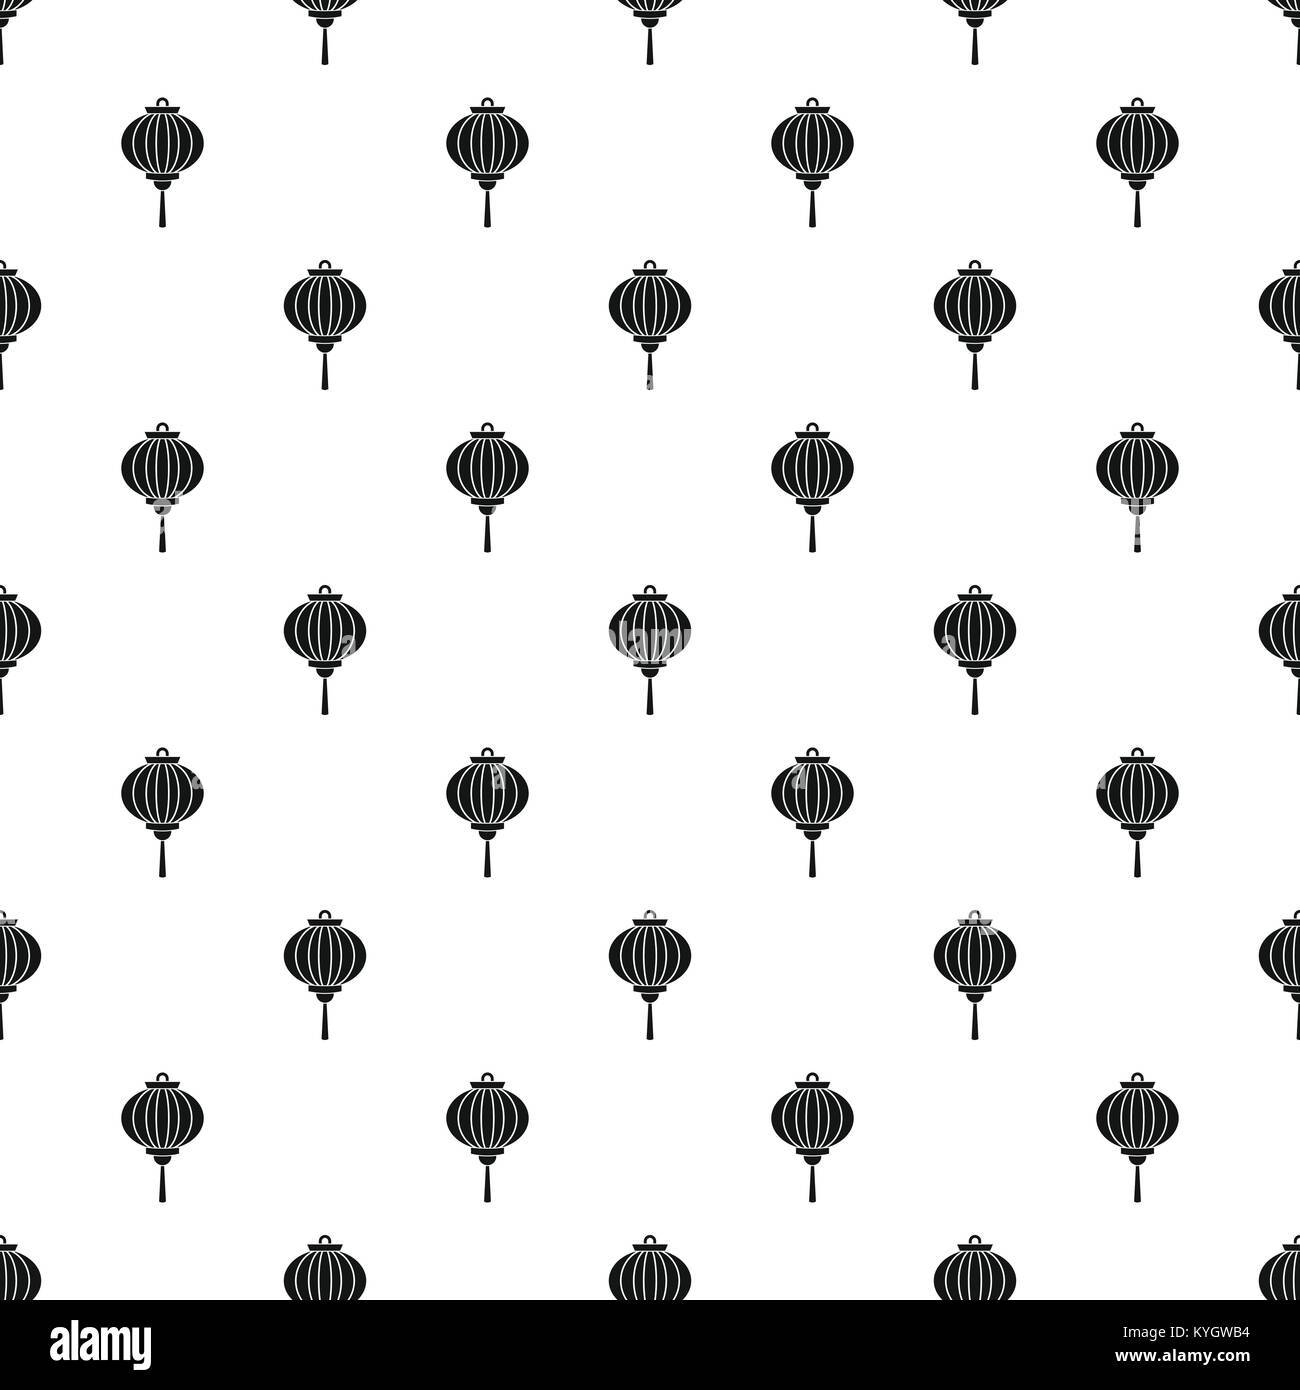 Red chinese lantern pattern vector - Stock Image